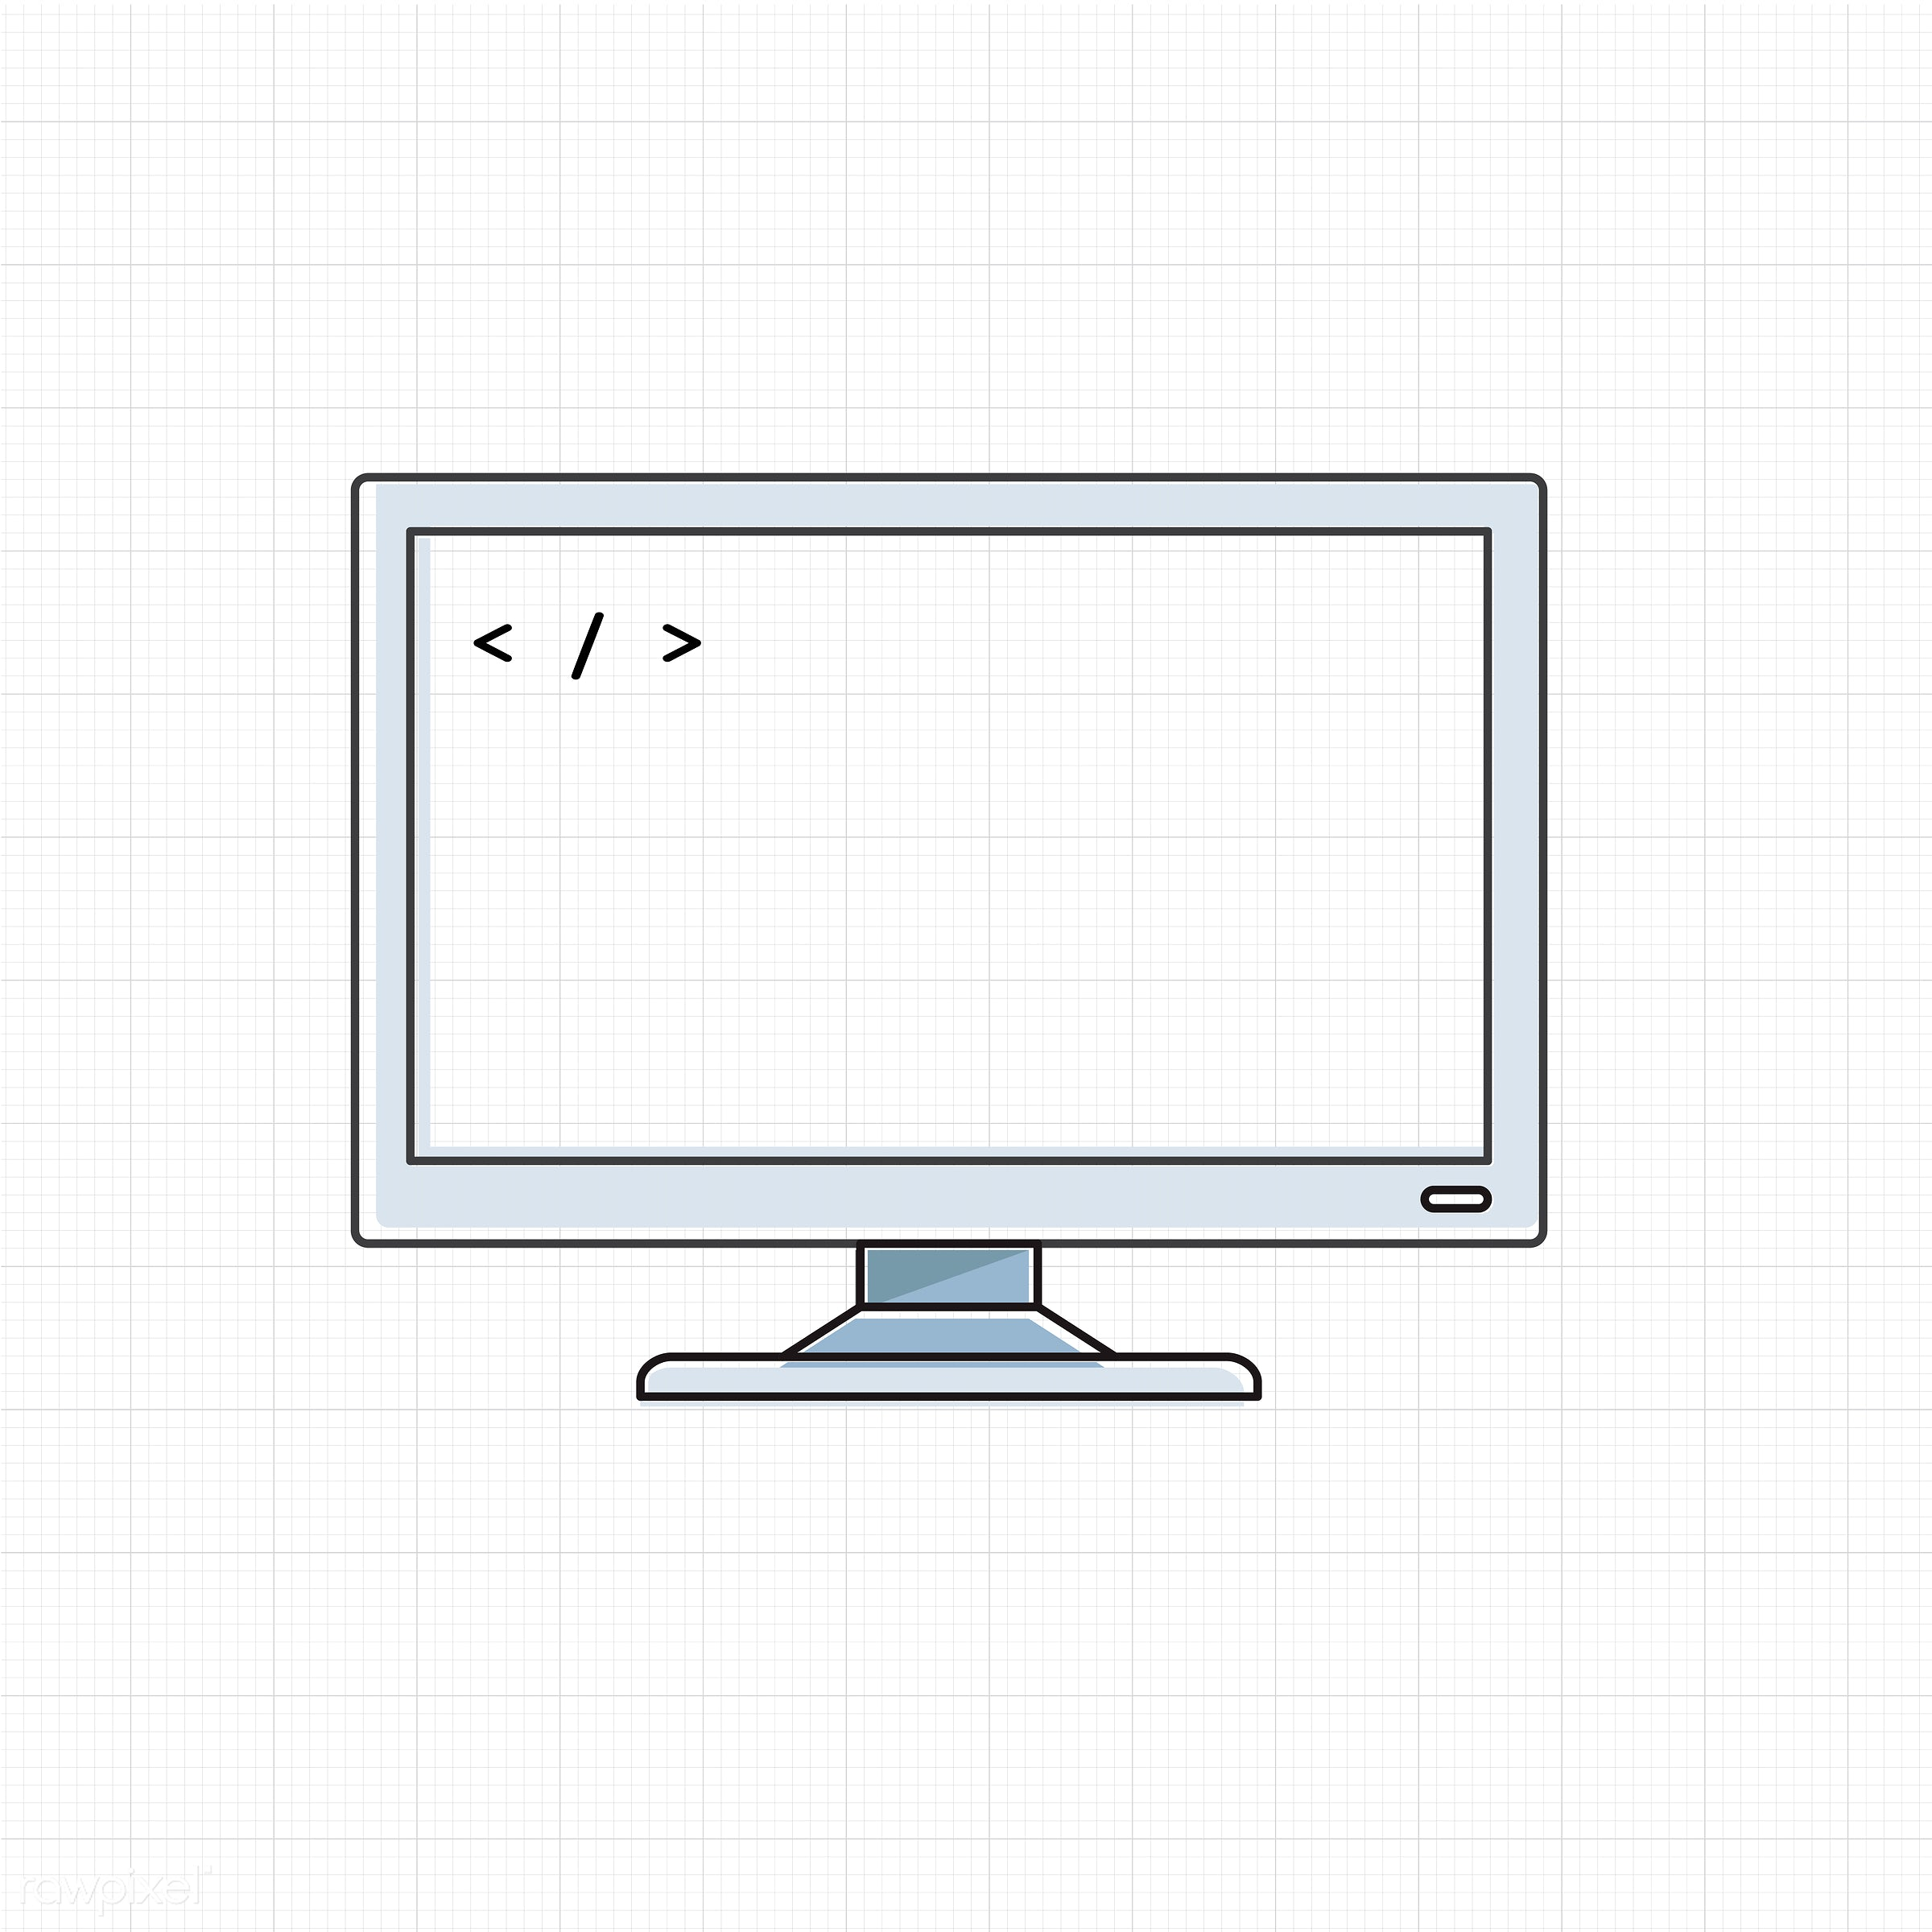 Vector of computer digital device - computer, desktop, digital, electronic, graphic, icon, illustration, monitor, objects,...